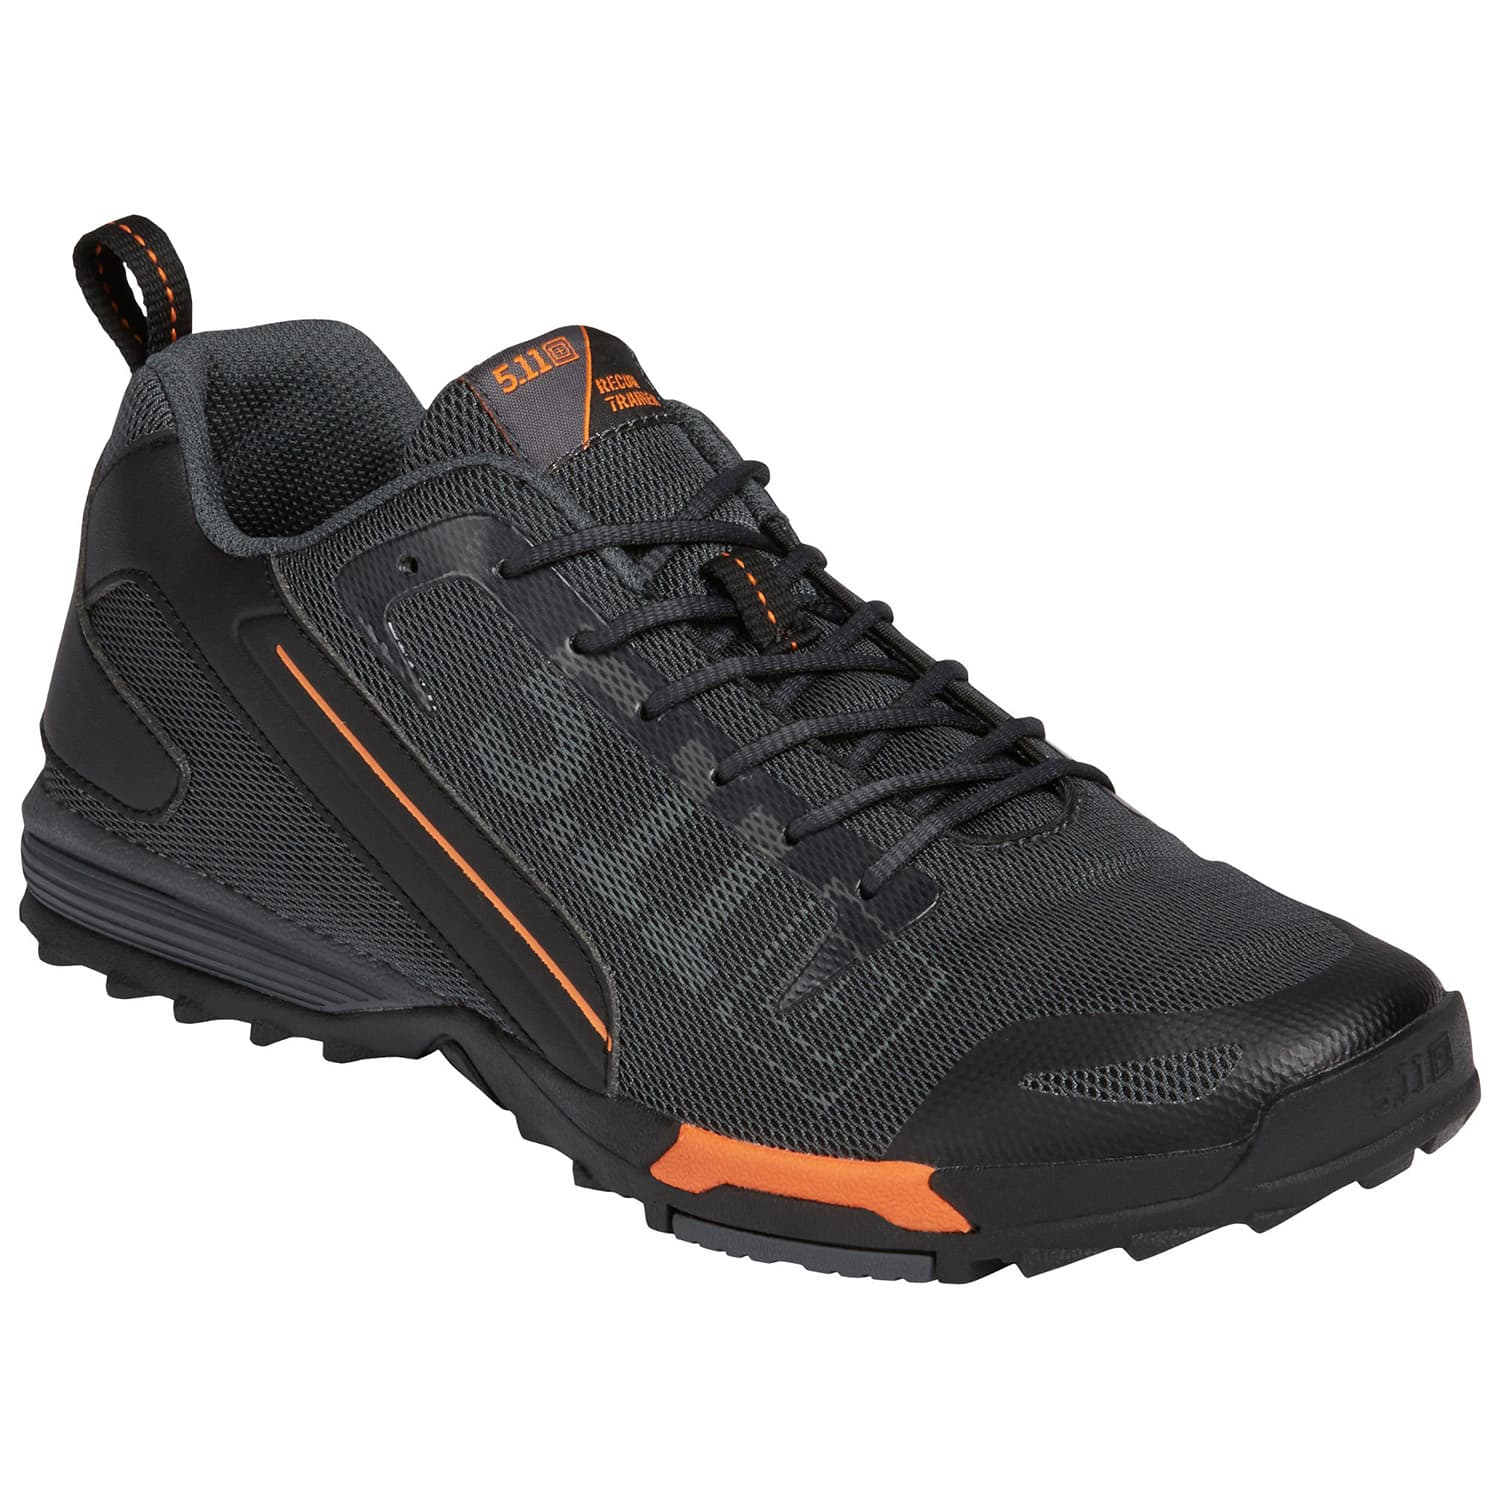 5.11 Recon Trainer Lightweight Athletic Running Fitness Shoes $40 + free shipping